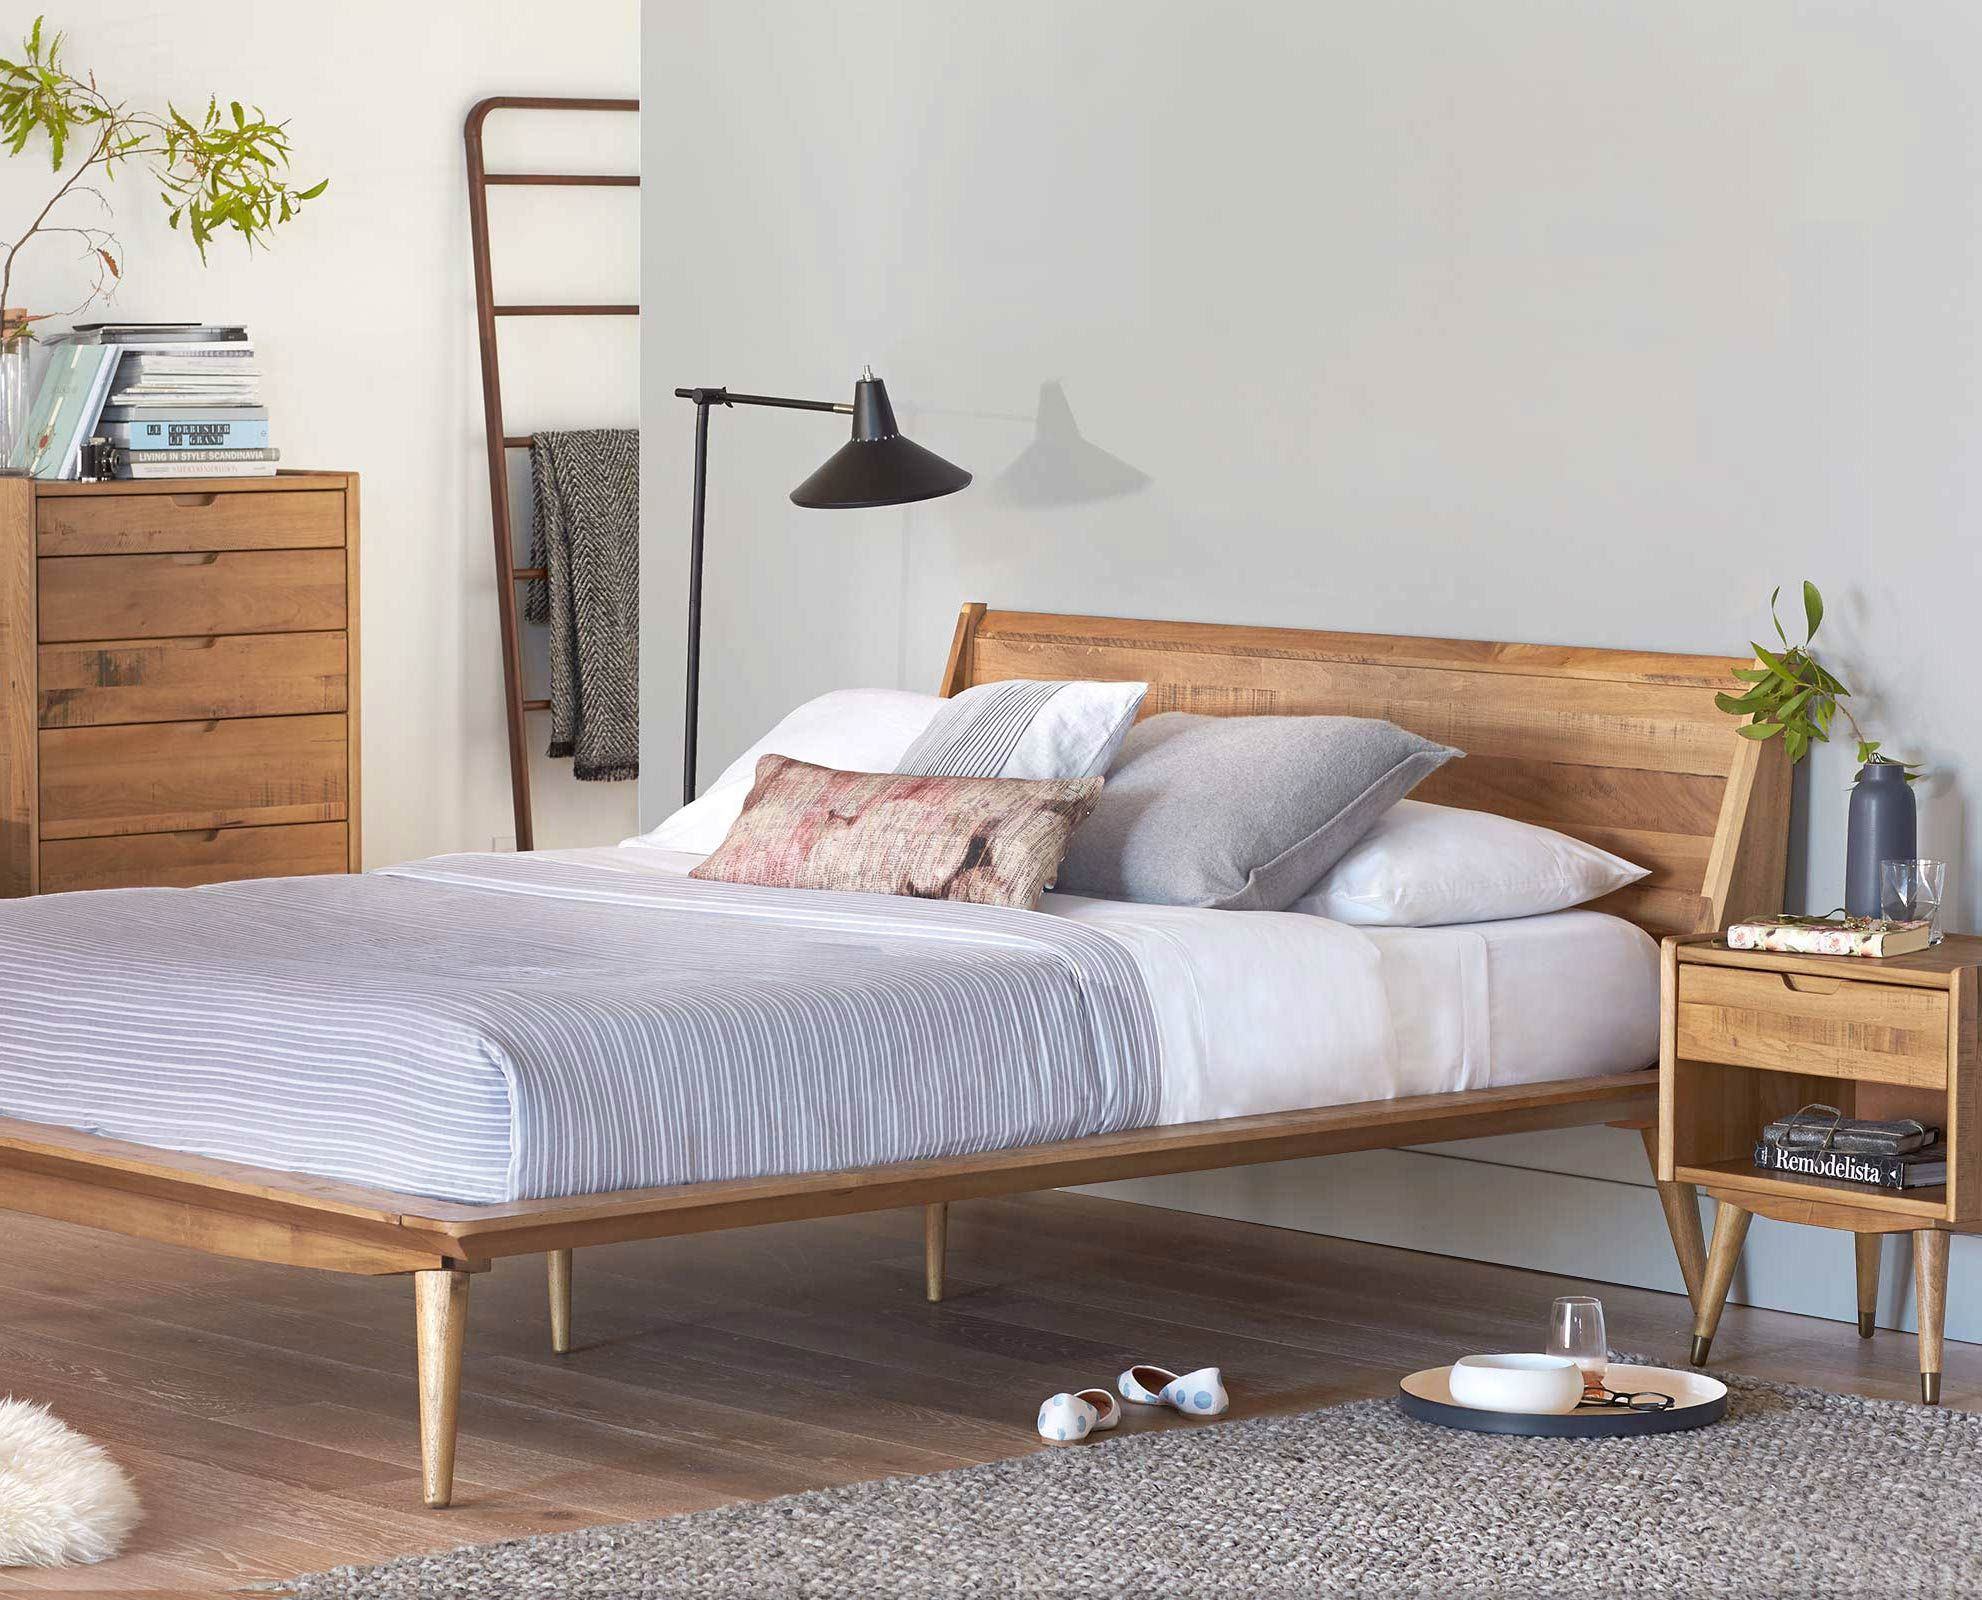 Scandinavian Designs The Nordic Inspired Bolig Bed Is Crafted From Solid Poplar And Features A Warm Stain Exposing The Natural Zukunftige Projekte Schla